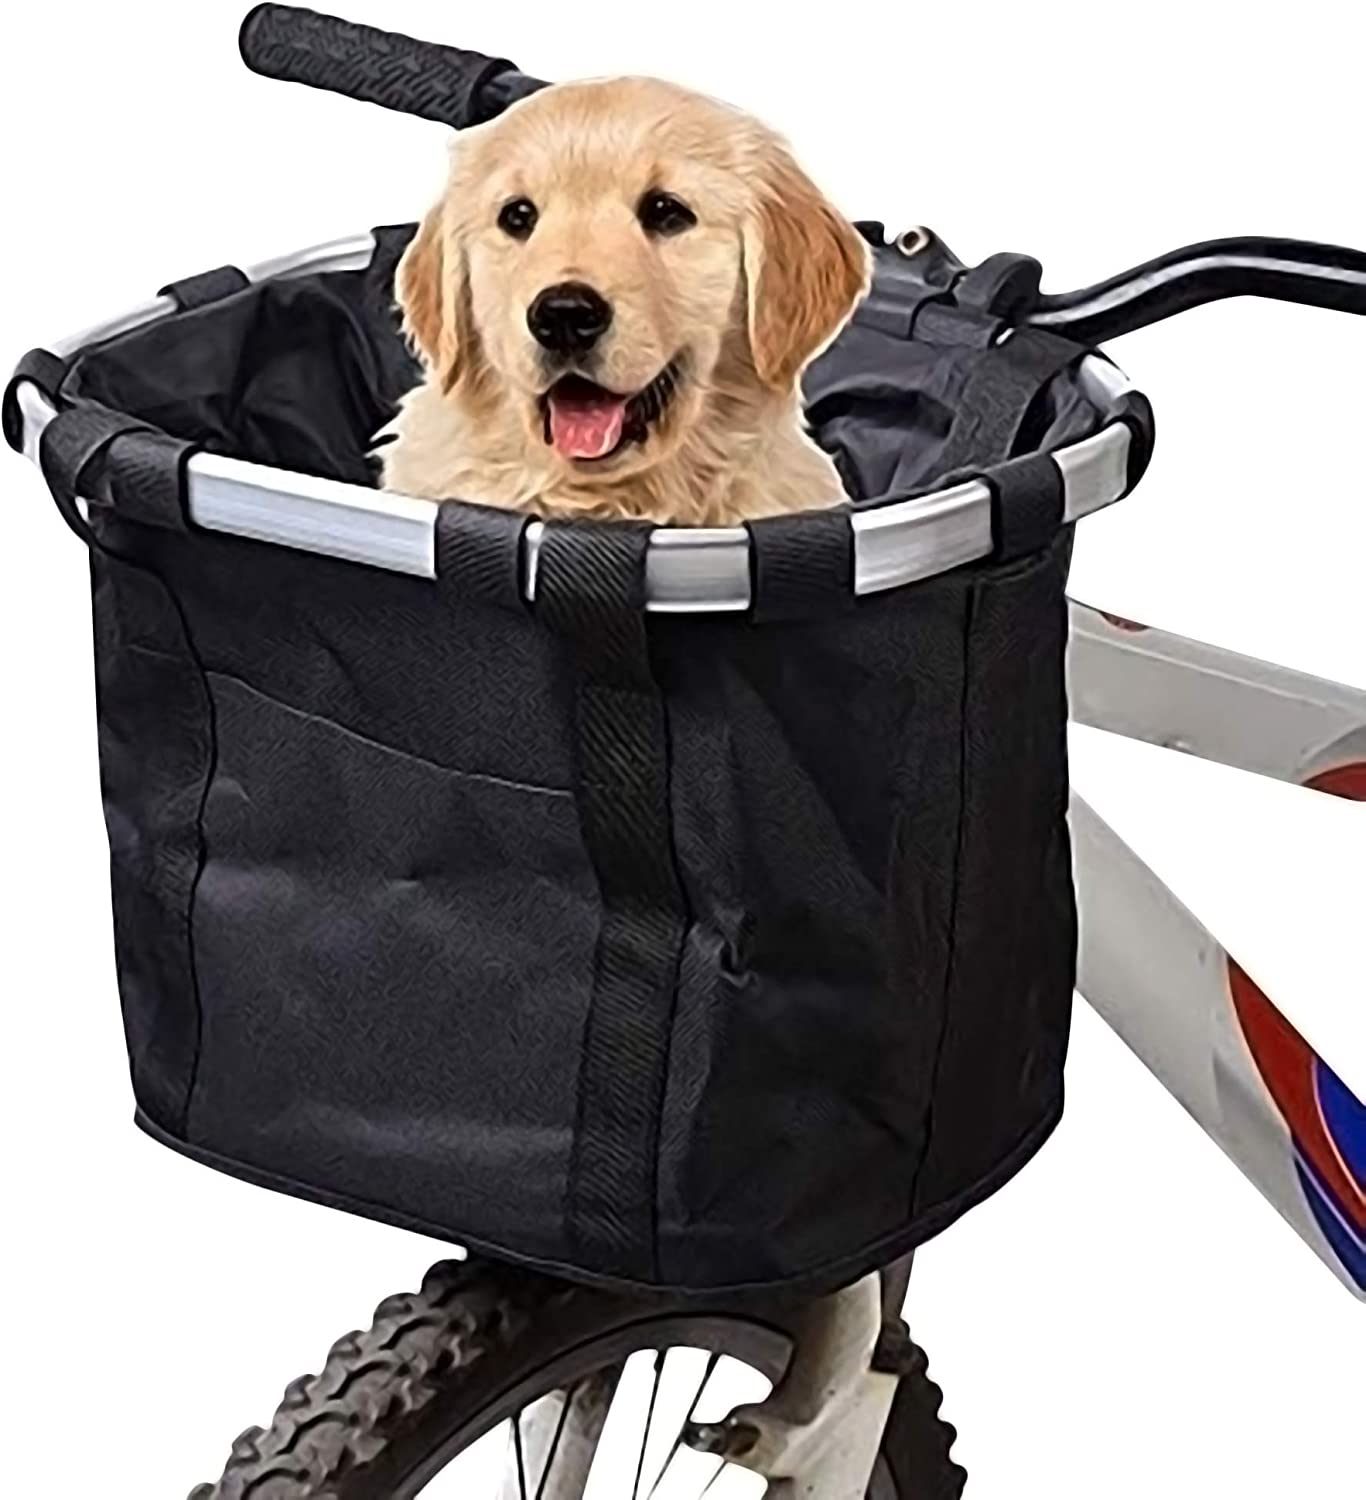 Lixada Bike Basket Folding Pet Cat Dog Carrier Front Removable Bicycle Handlebar Basket Quick Release Easy Install Detachable Cycling Bag Mountain Picnic Shopping